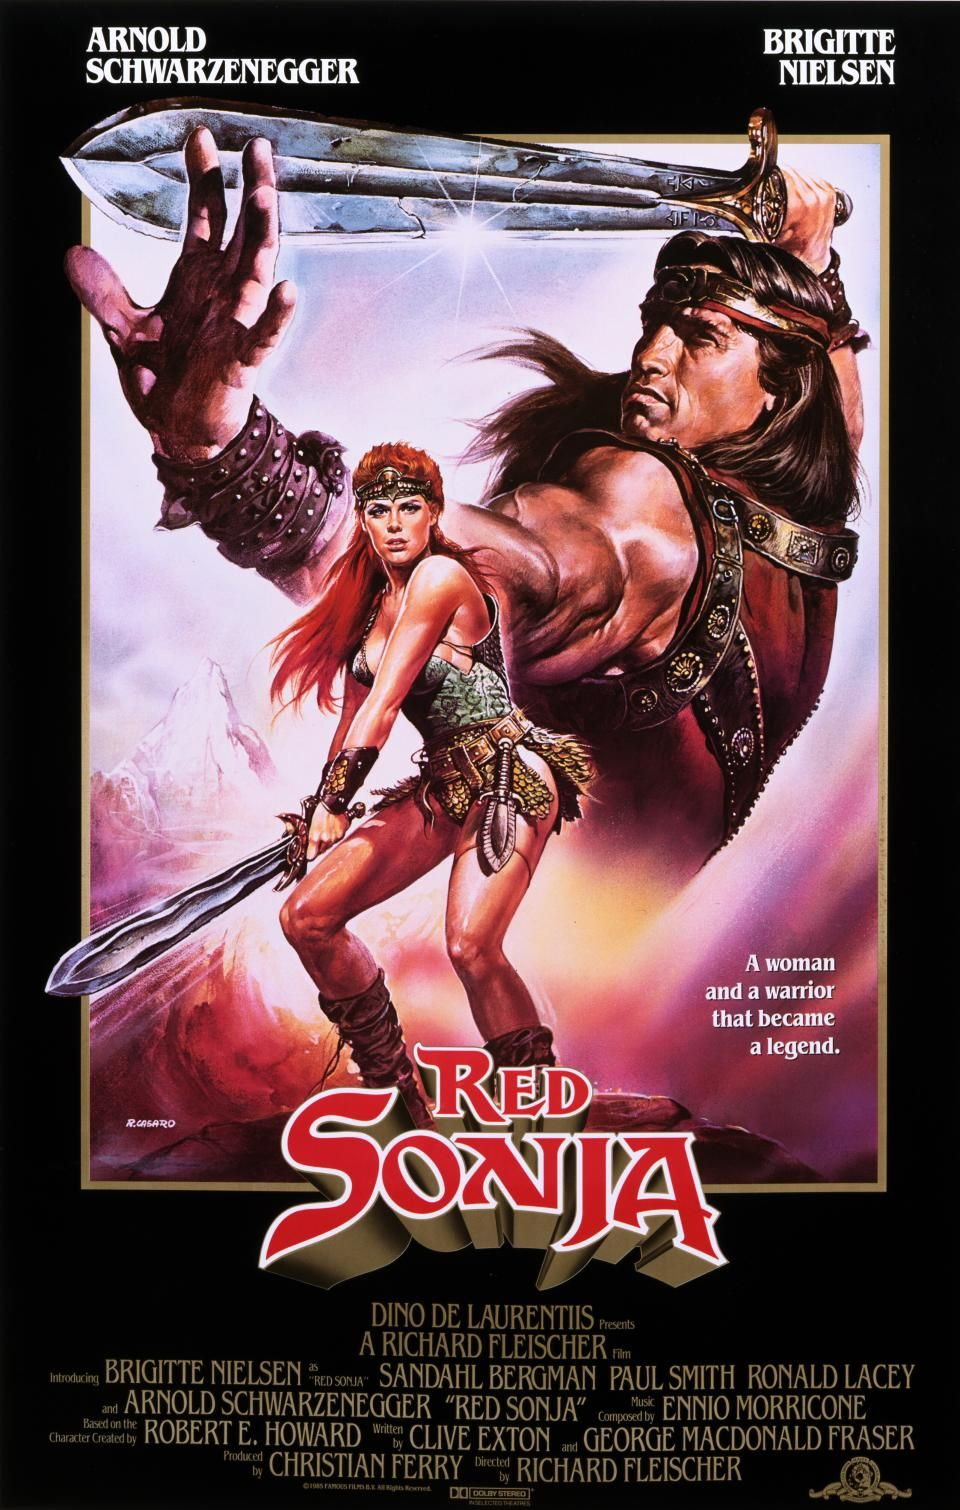 Red Sonja | Movie Posters | Pinterest | Red sonja, Movie and Film ...